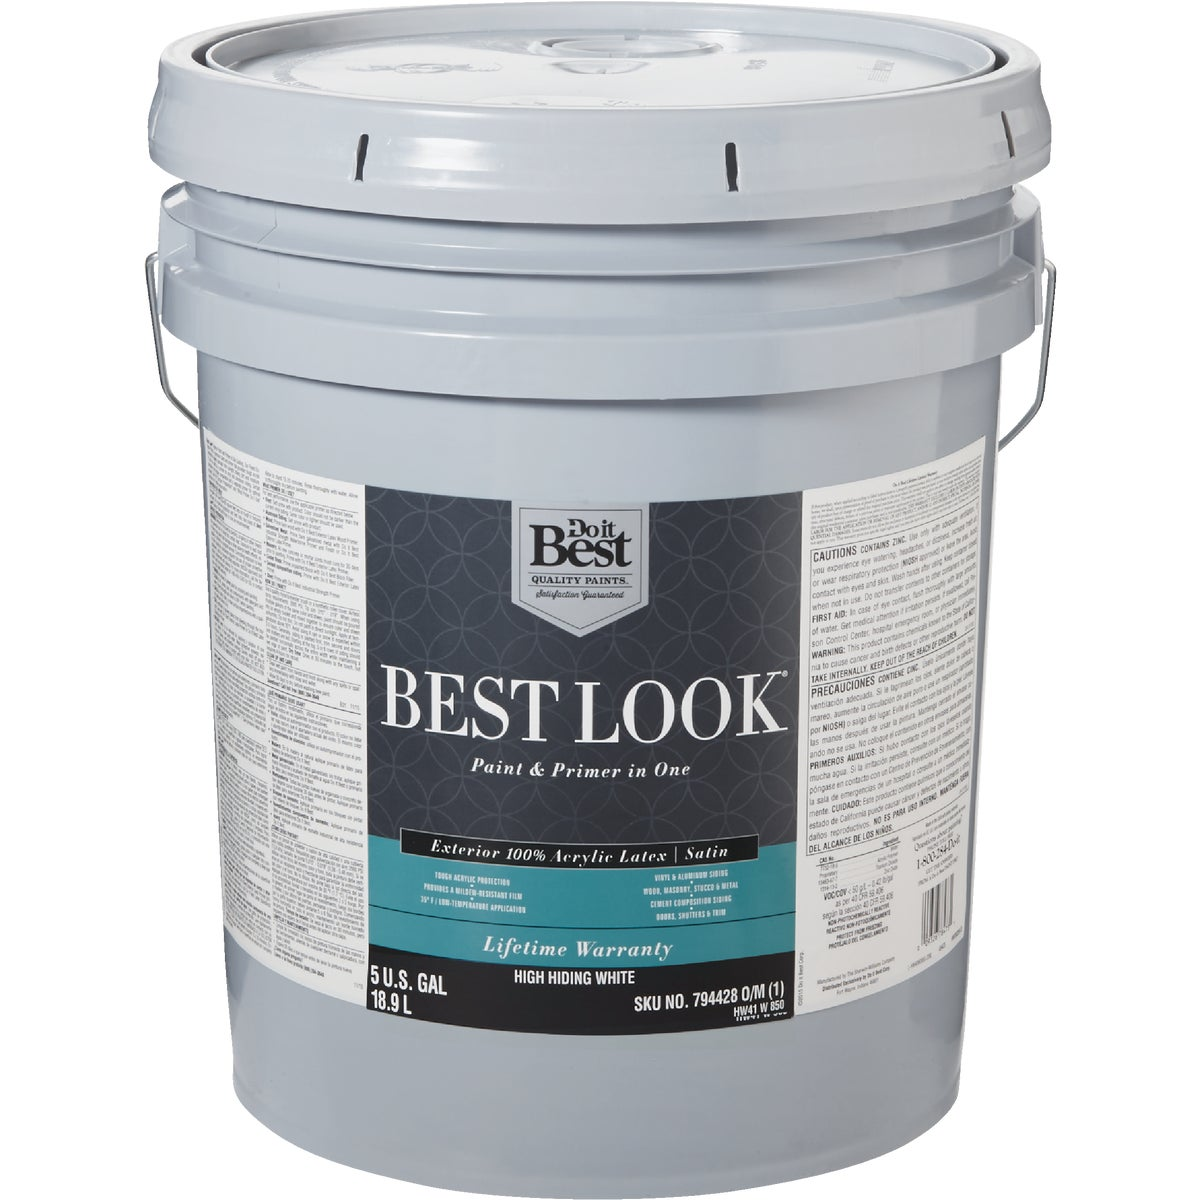 EXT SAT H HIDE WHT PAINT - HW41W0850-20 by Do it Best